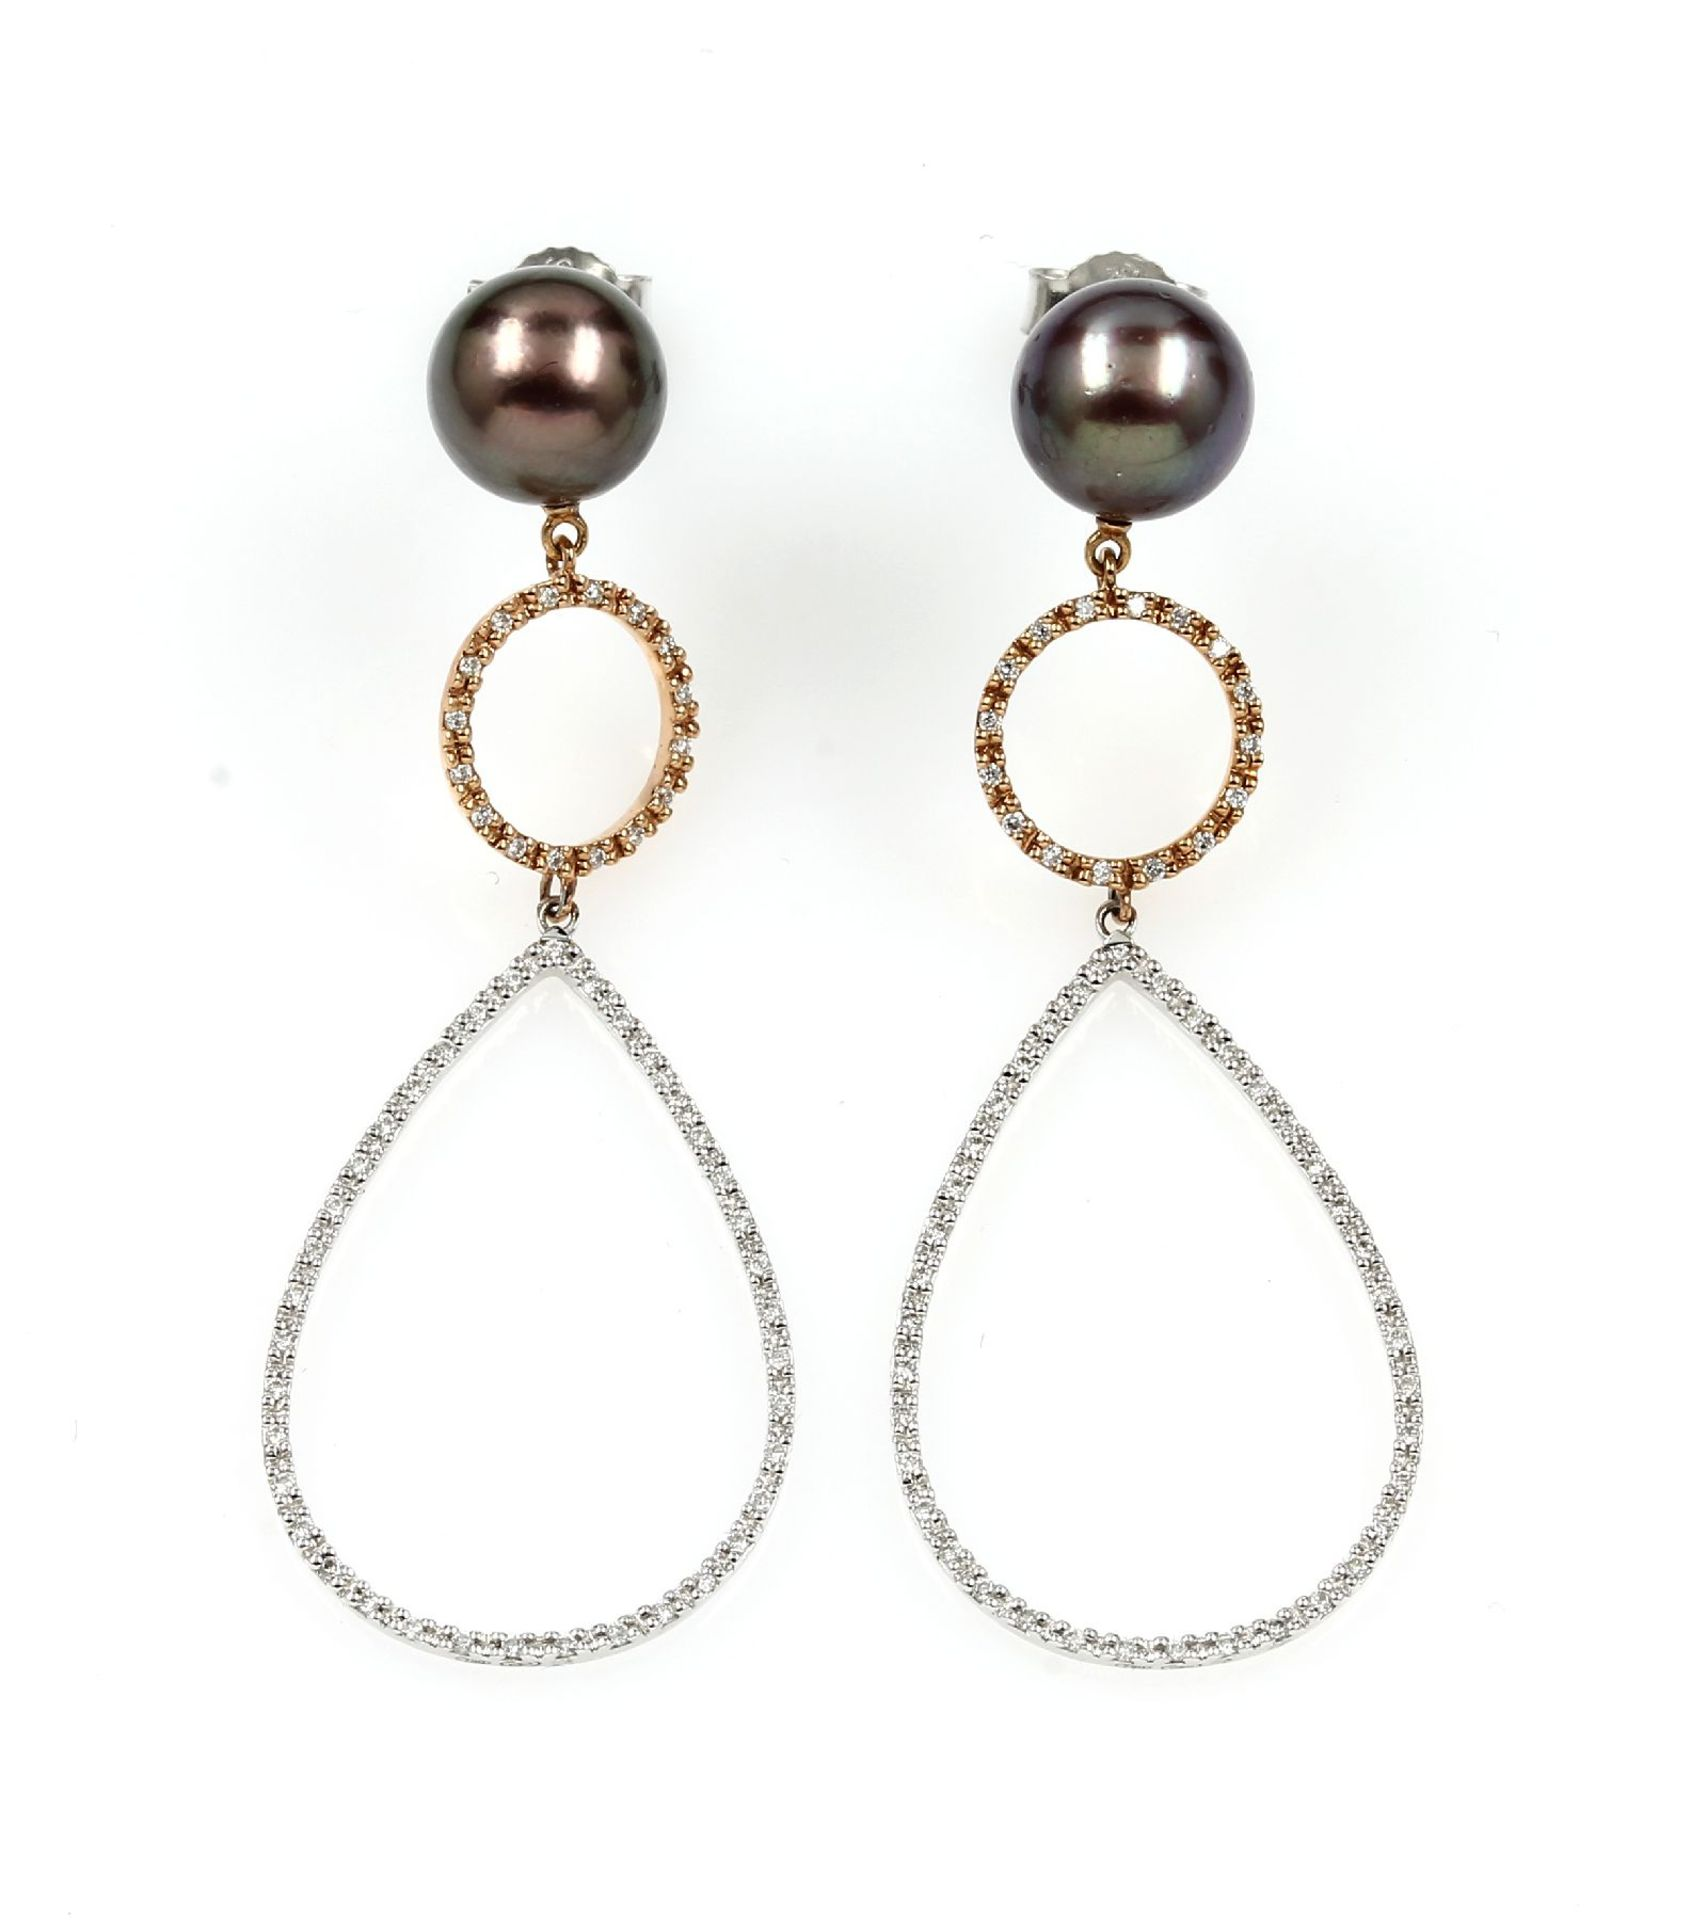 Los 61537 - Pair of 18 kt gold earrings with pearls and diamonds , RoseG/WG 750/000, anthrazit coloured cultured